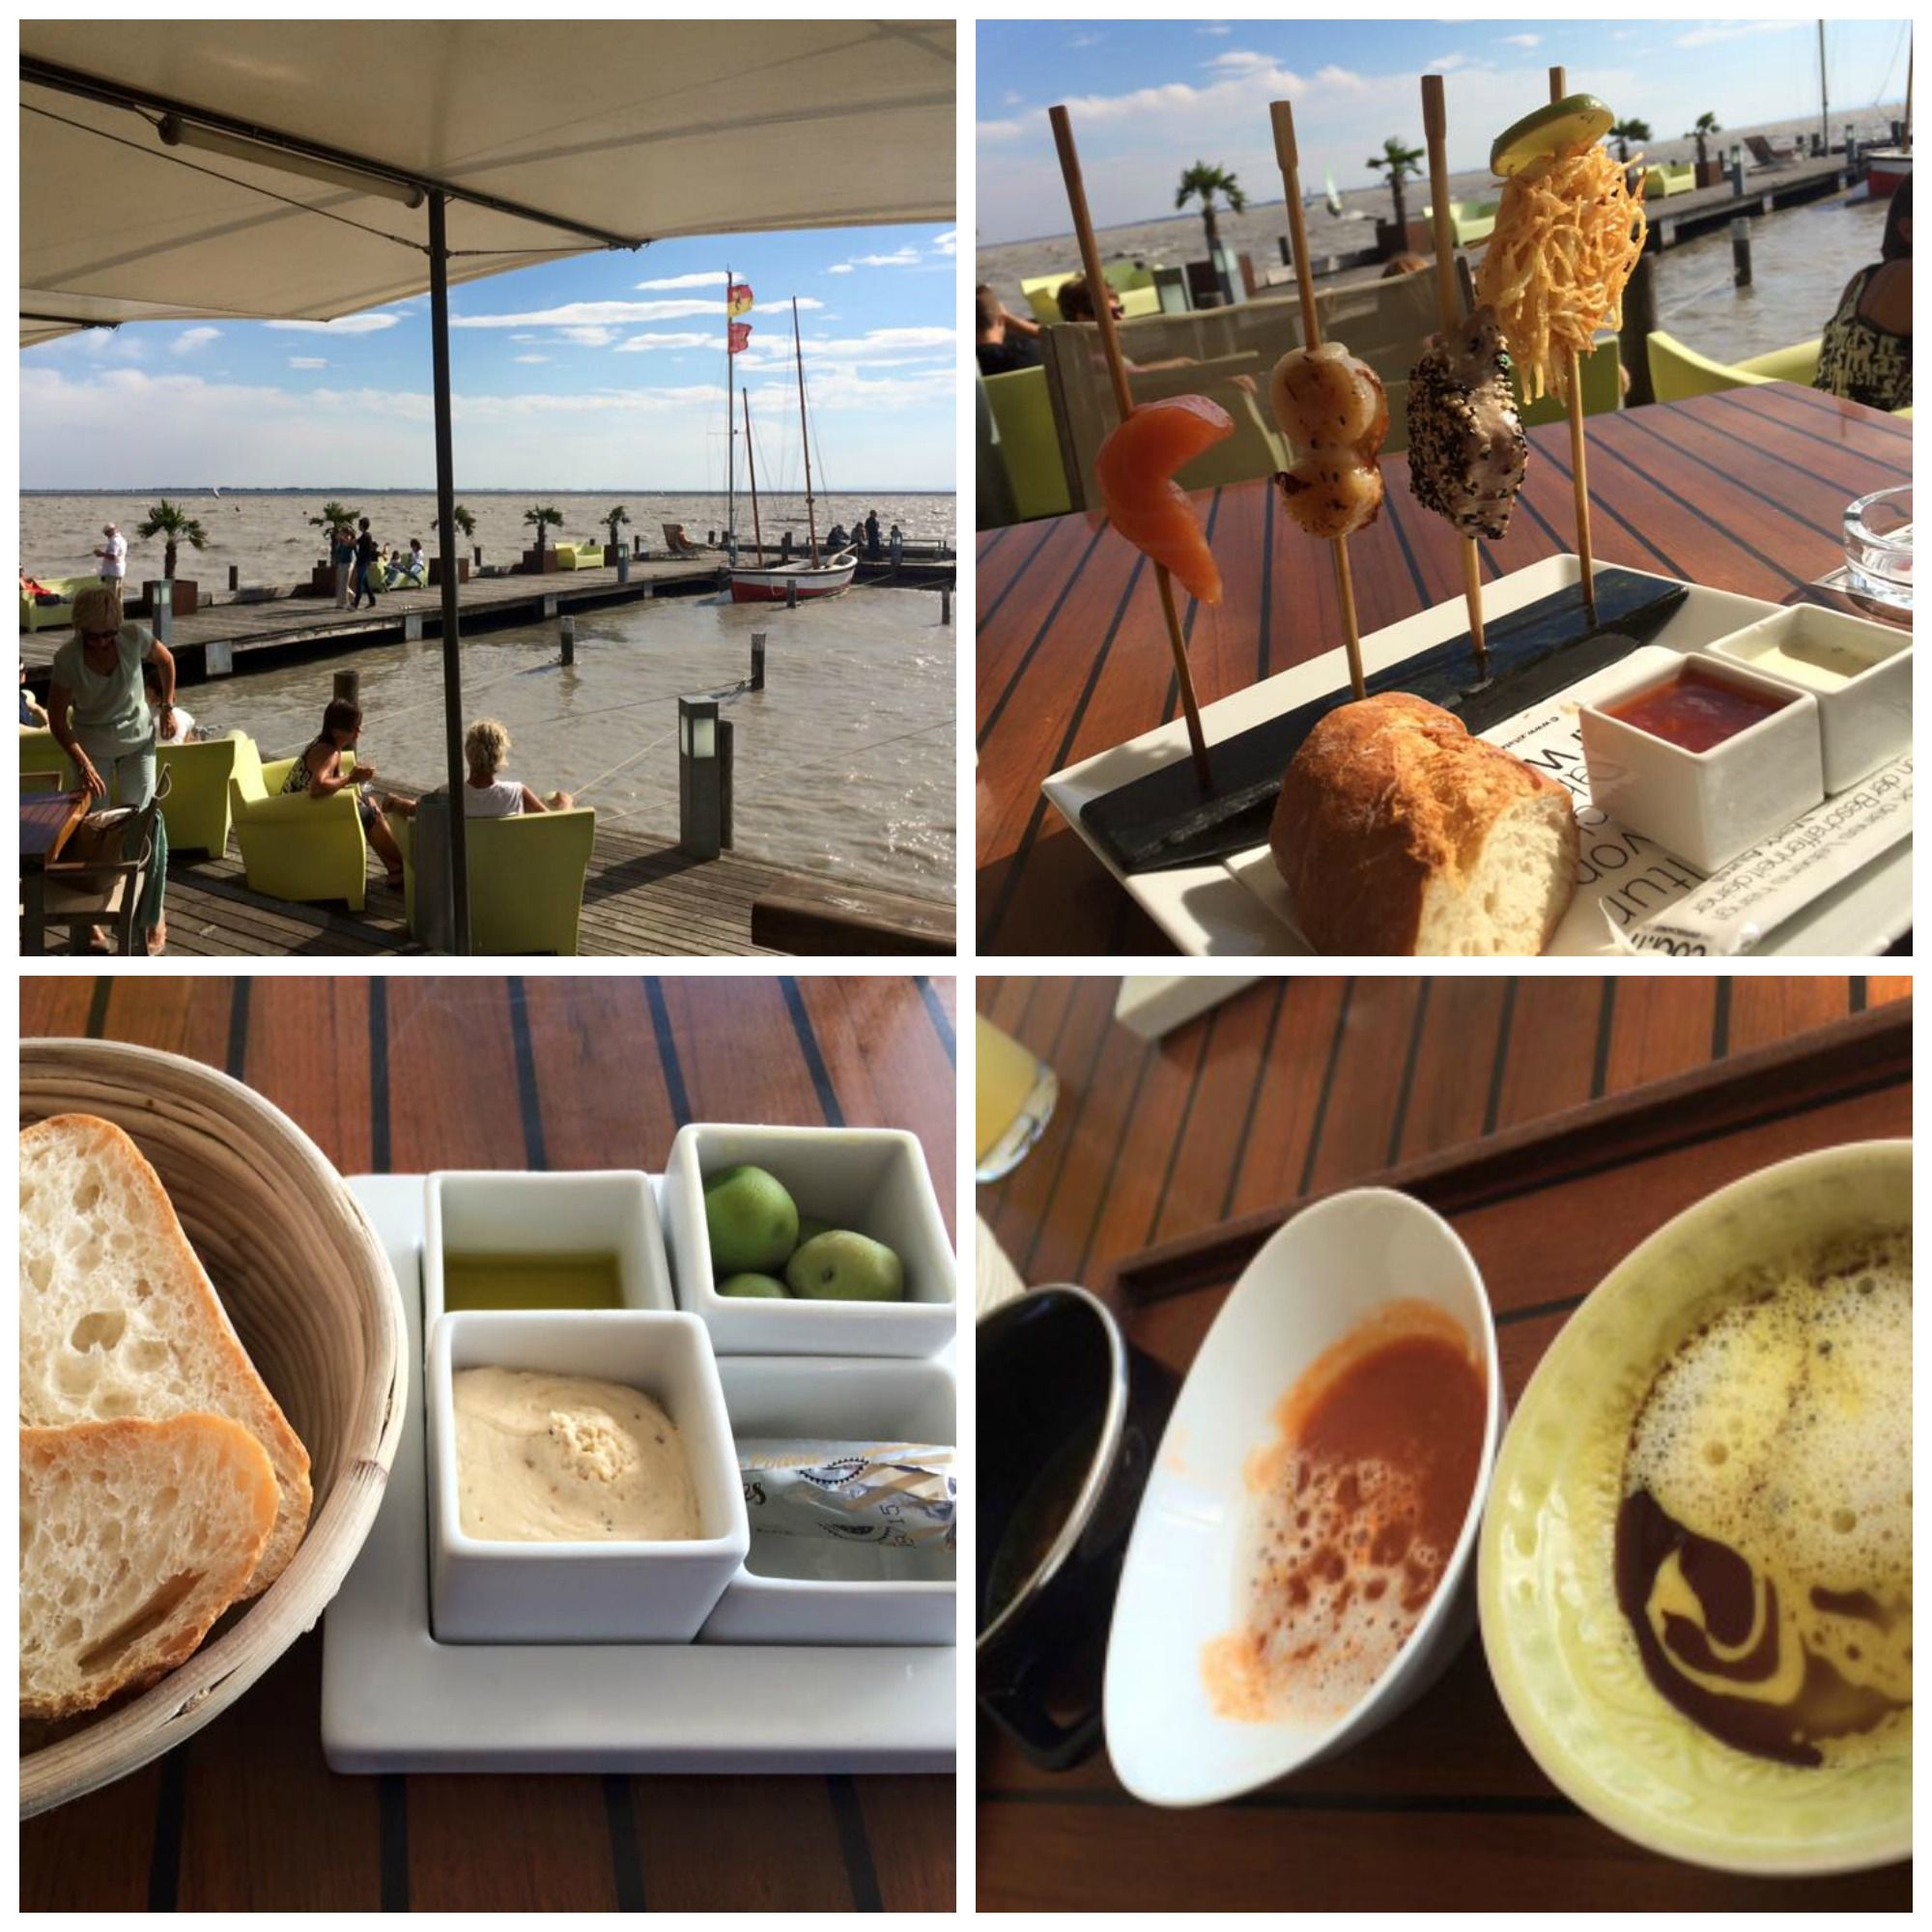 Mole west brunch  restaurant MOLE WEST at NEUSIEDLERSEE (AUT) - my favourite dishes ...